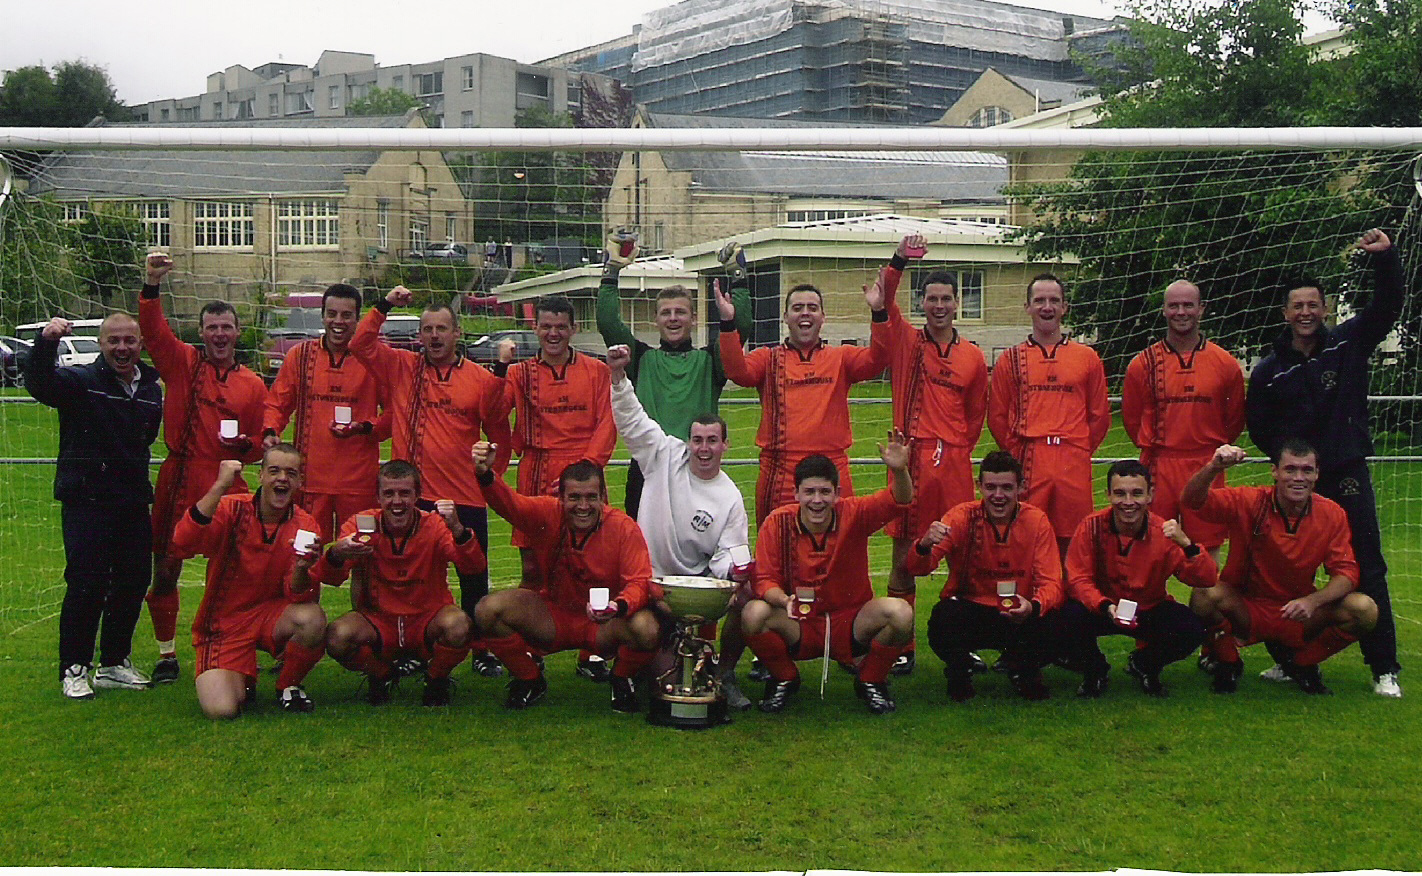 2002 Tunney Cup Winners UKLFcsg